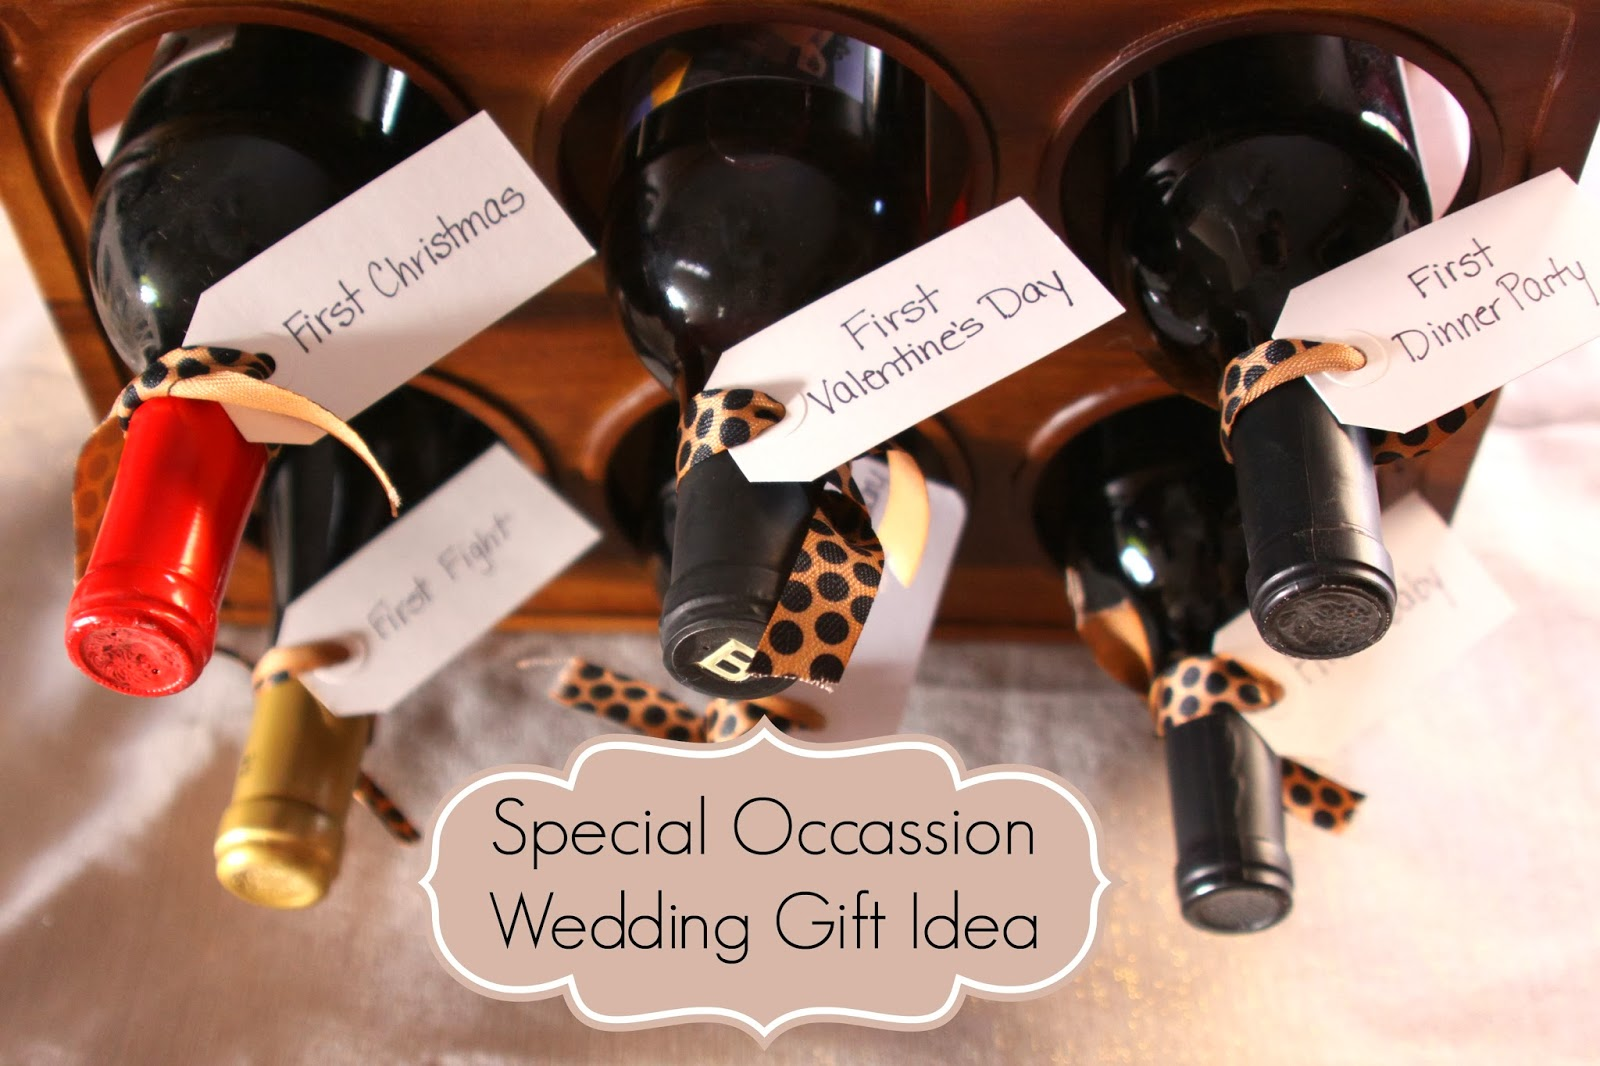 ... Family: Special Day Wedding Gift Idea & Target Wedding Registry